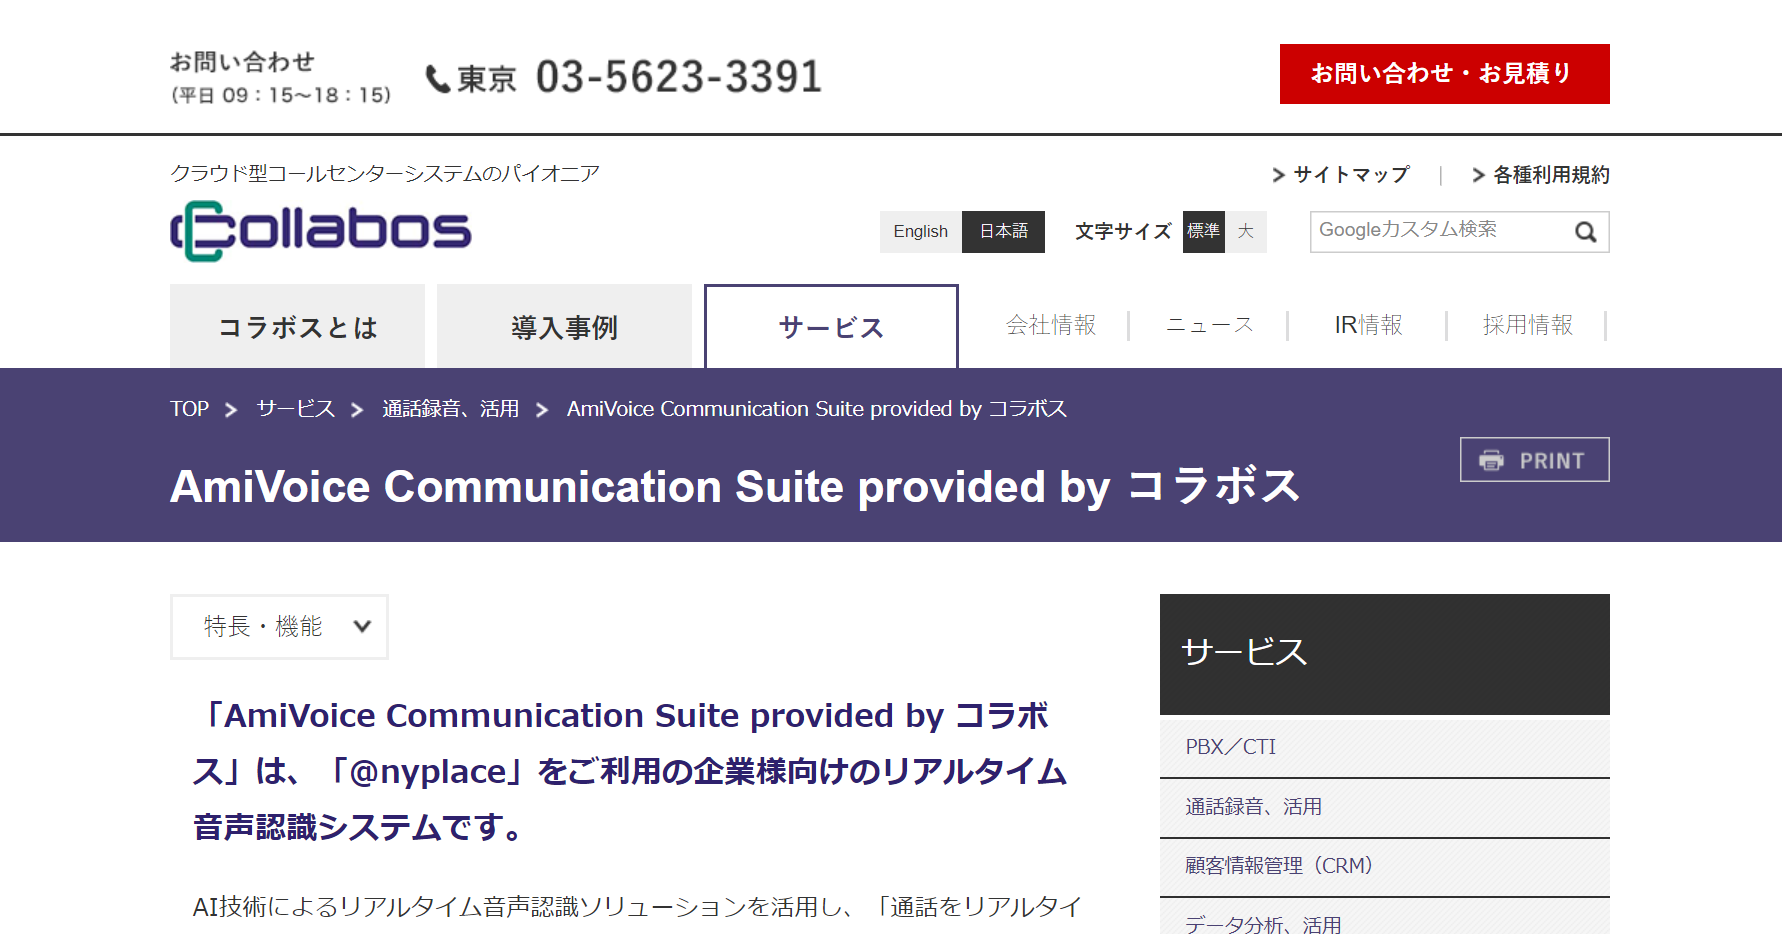 AmiVoice Communication Suite provided by コラボス